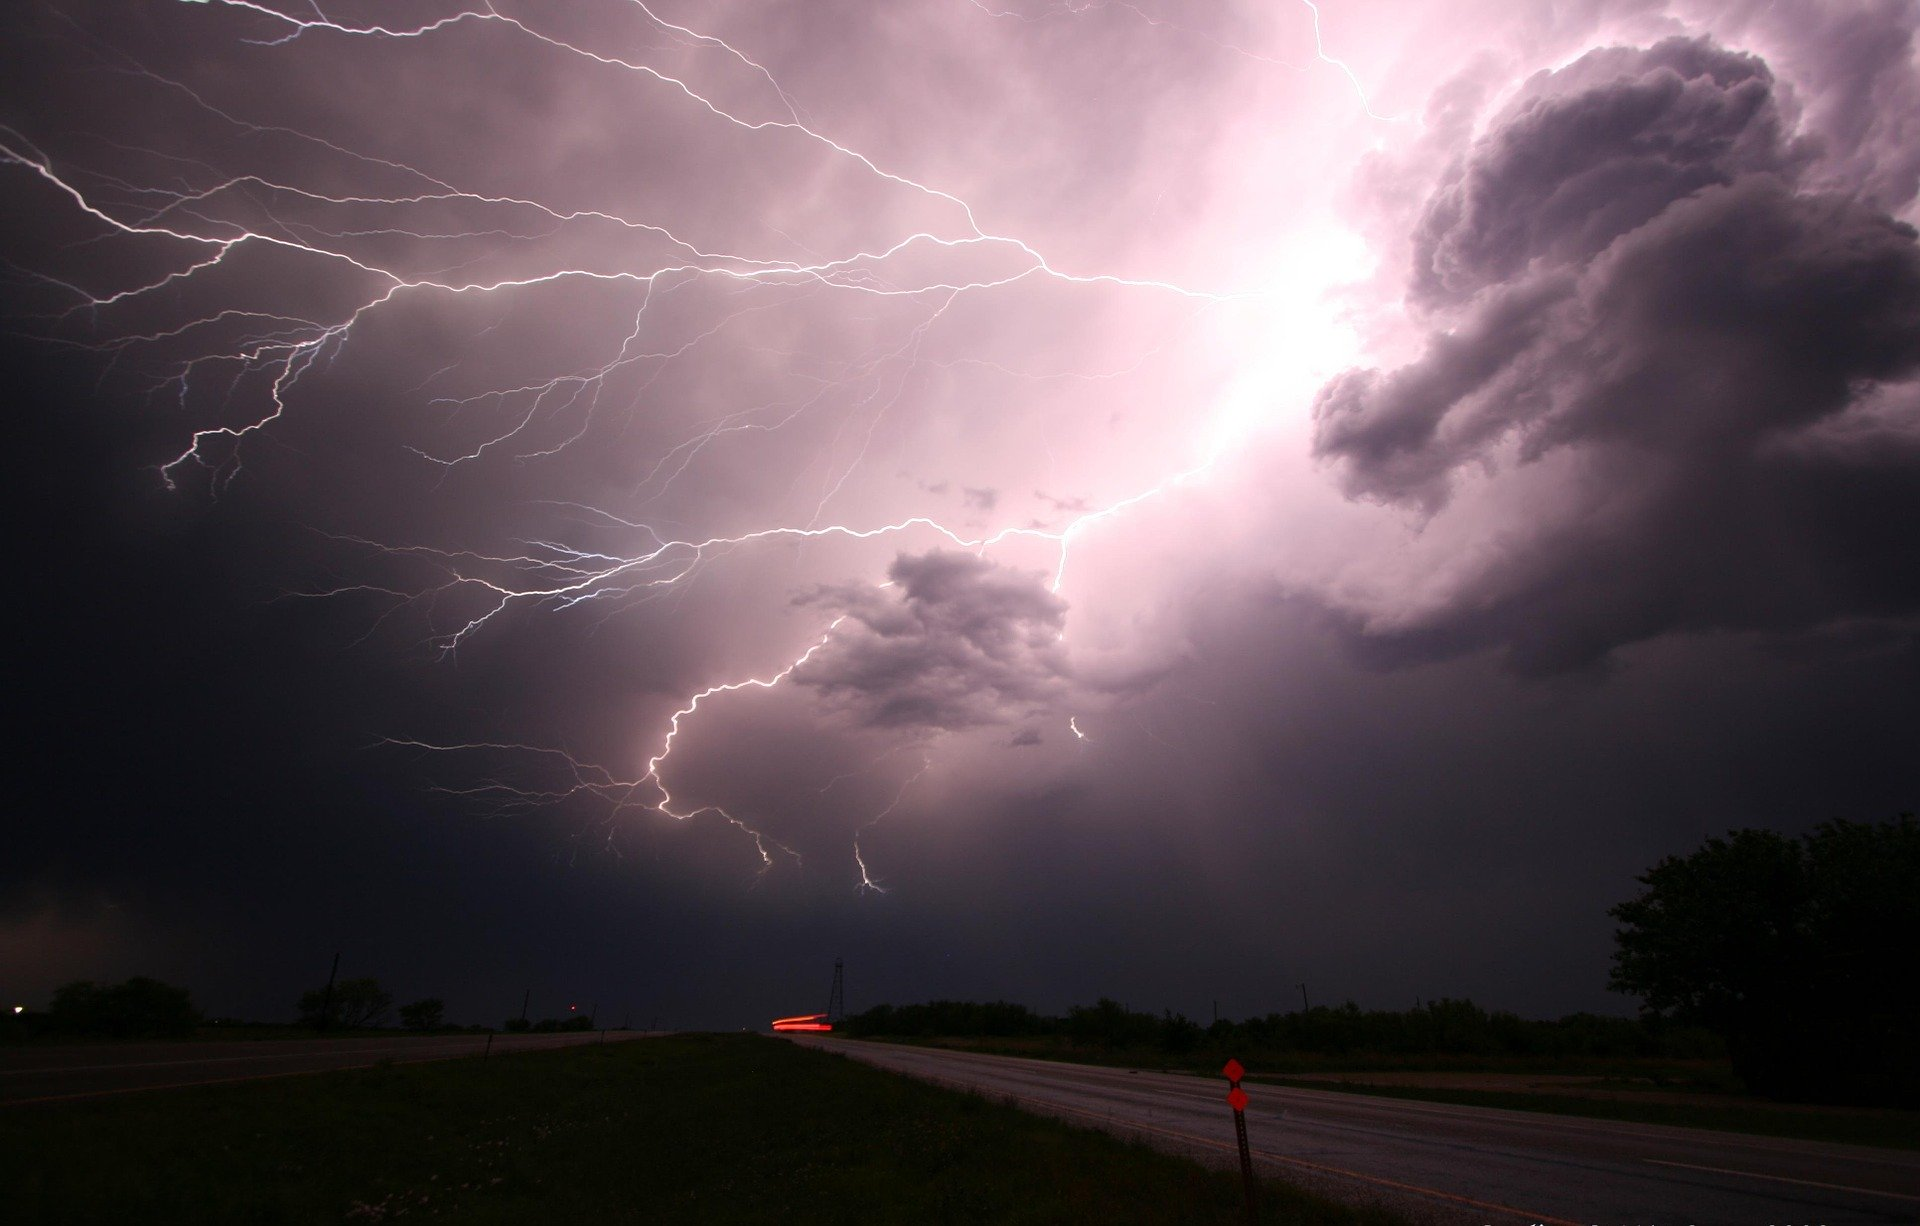 Severe weather will bring property damage that will in turn prompt property owners to file storm damage insurance claims and lawsuits to recoup losses.